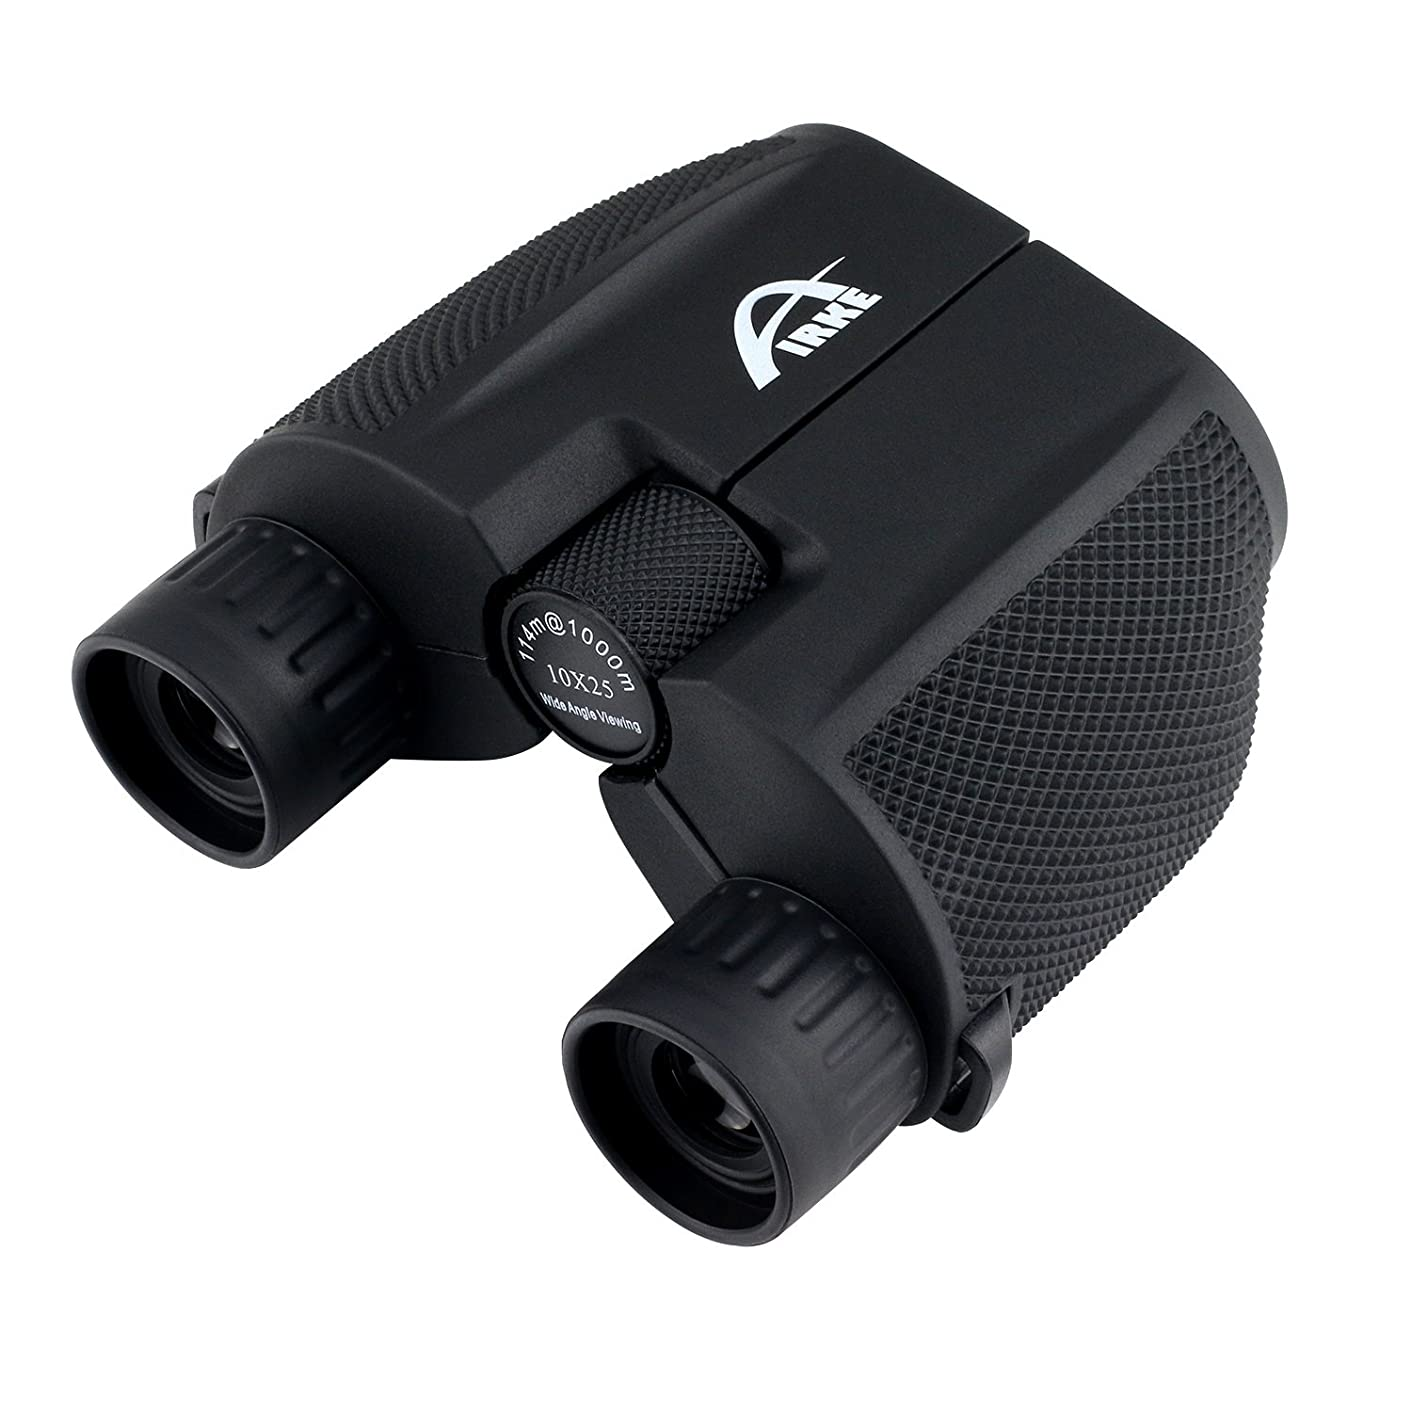 Airke 10x25 Folding High Powered Binoculars with Weak Light Night Vision Clear Bird Watching Great for Outdoor Sports Games and Concerts Binocular